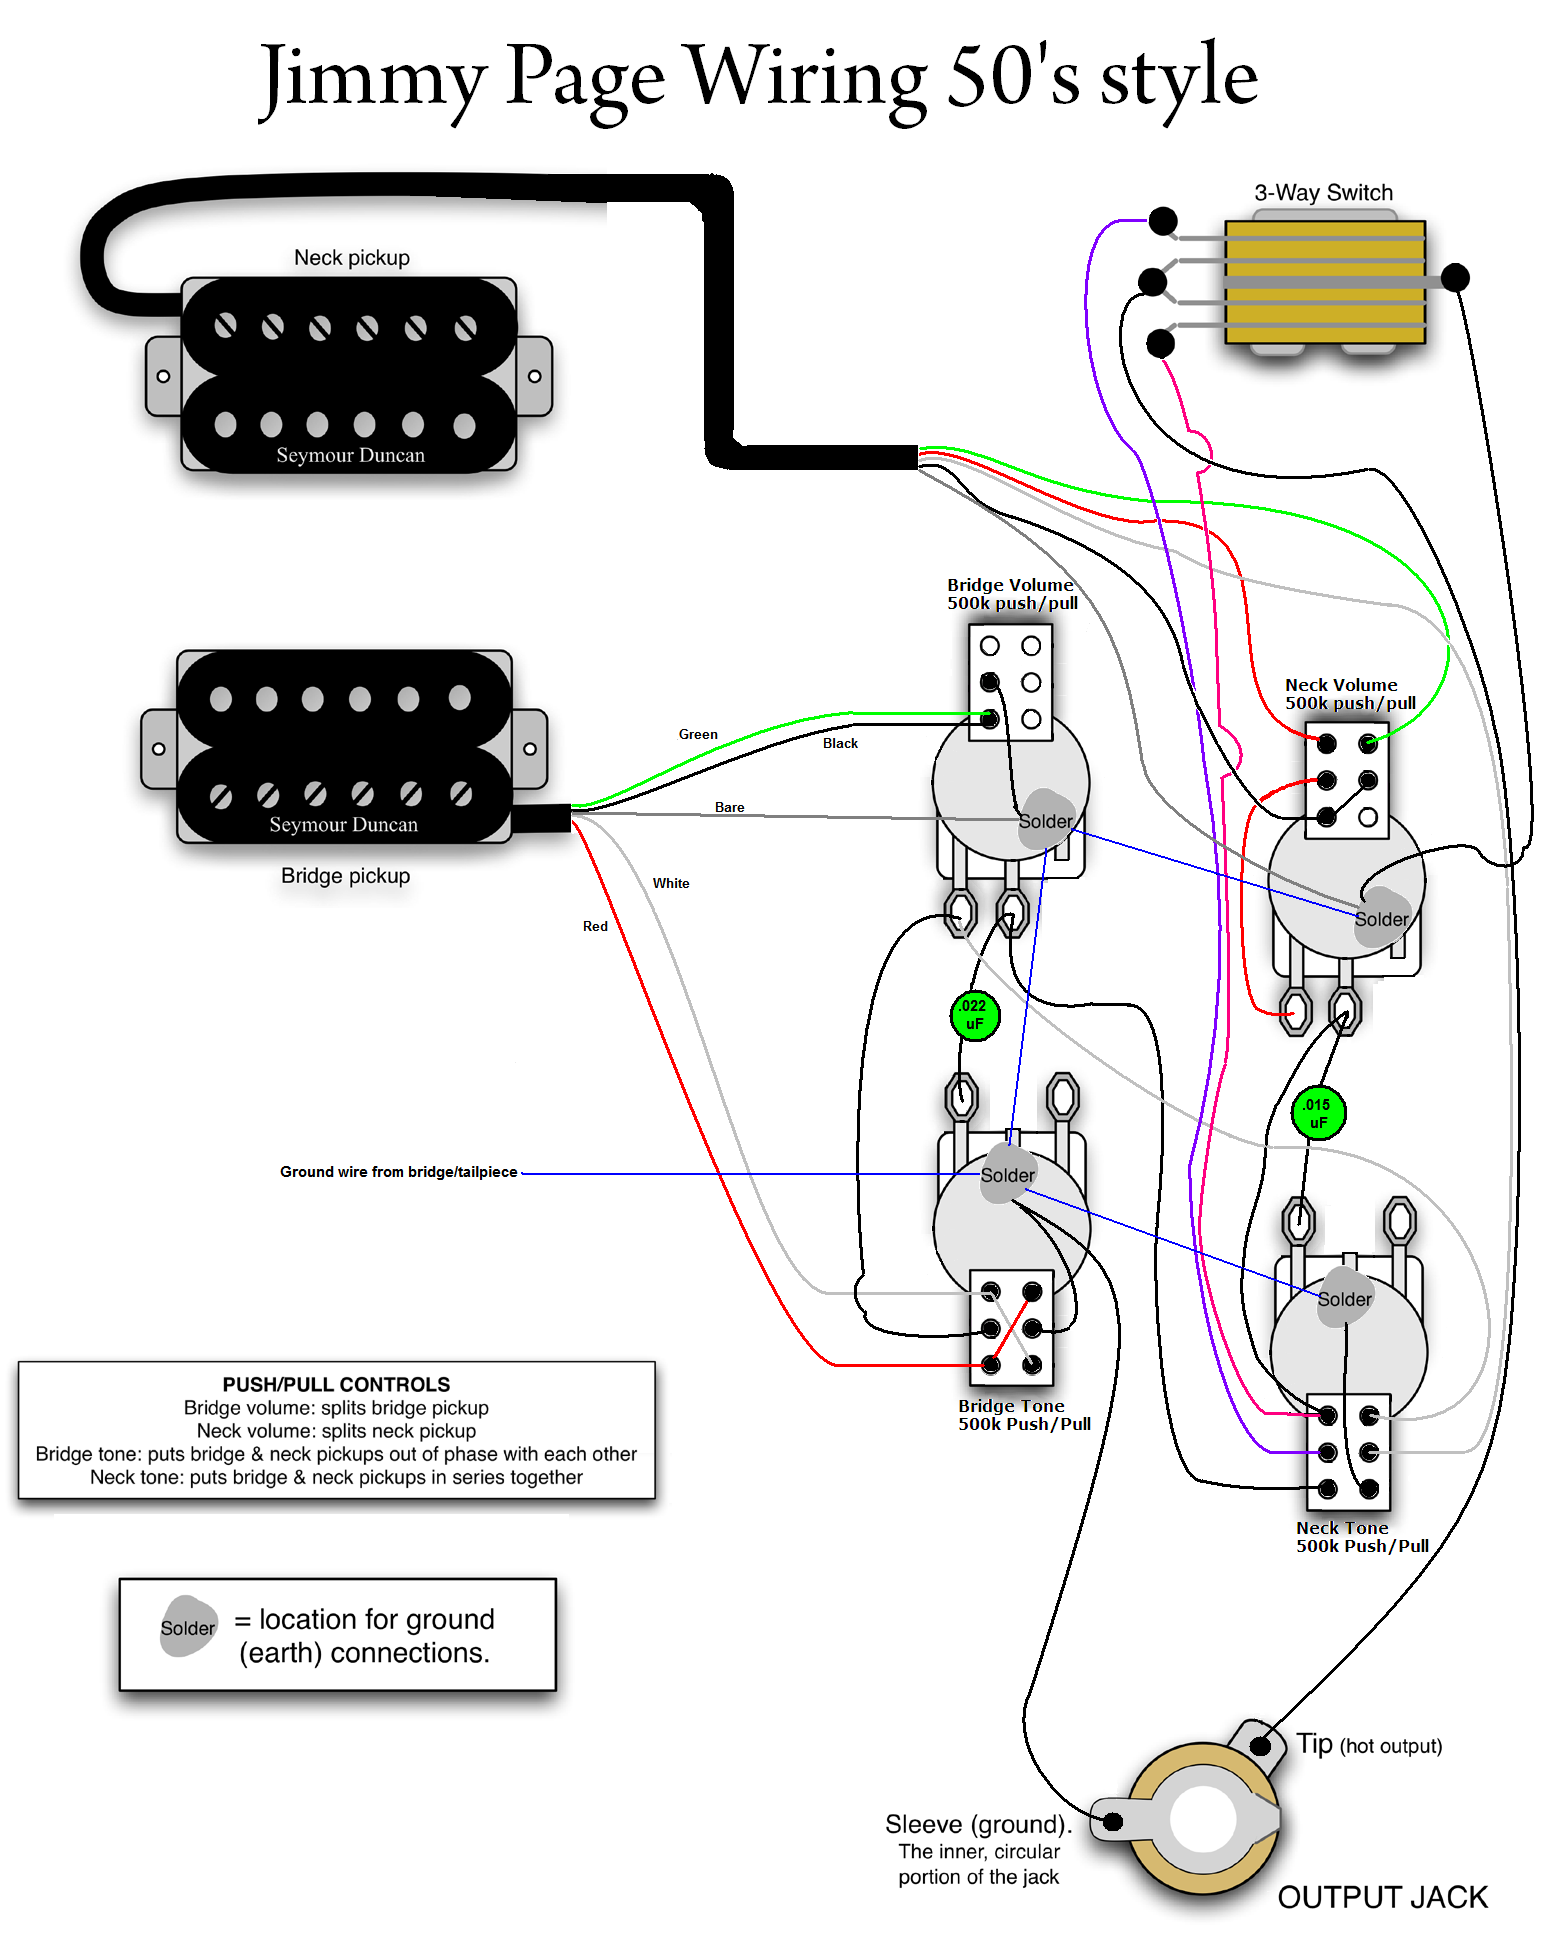 16 Seymour Duncan wiring diagrams ideas | guitar tech, guitar diy, guitar  buildingPinterest